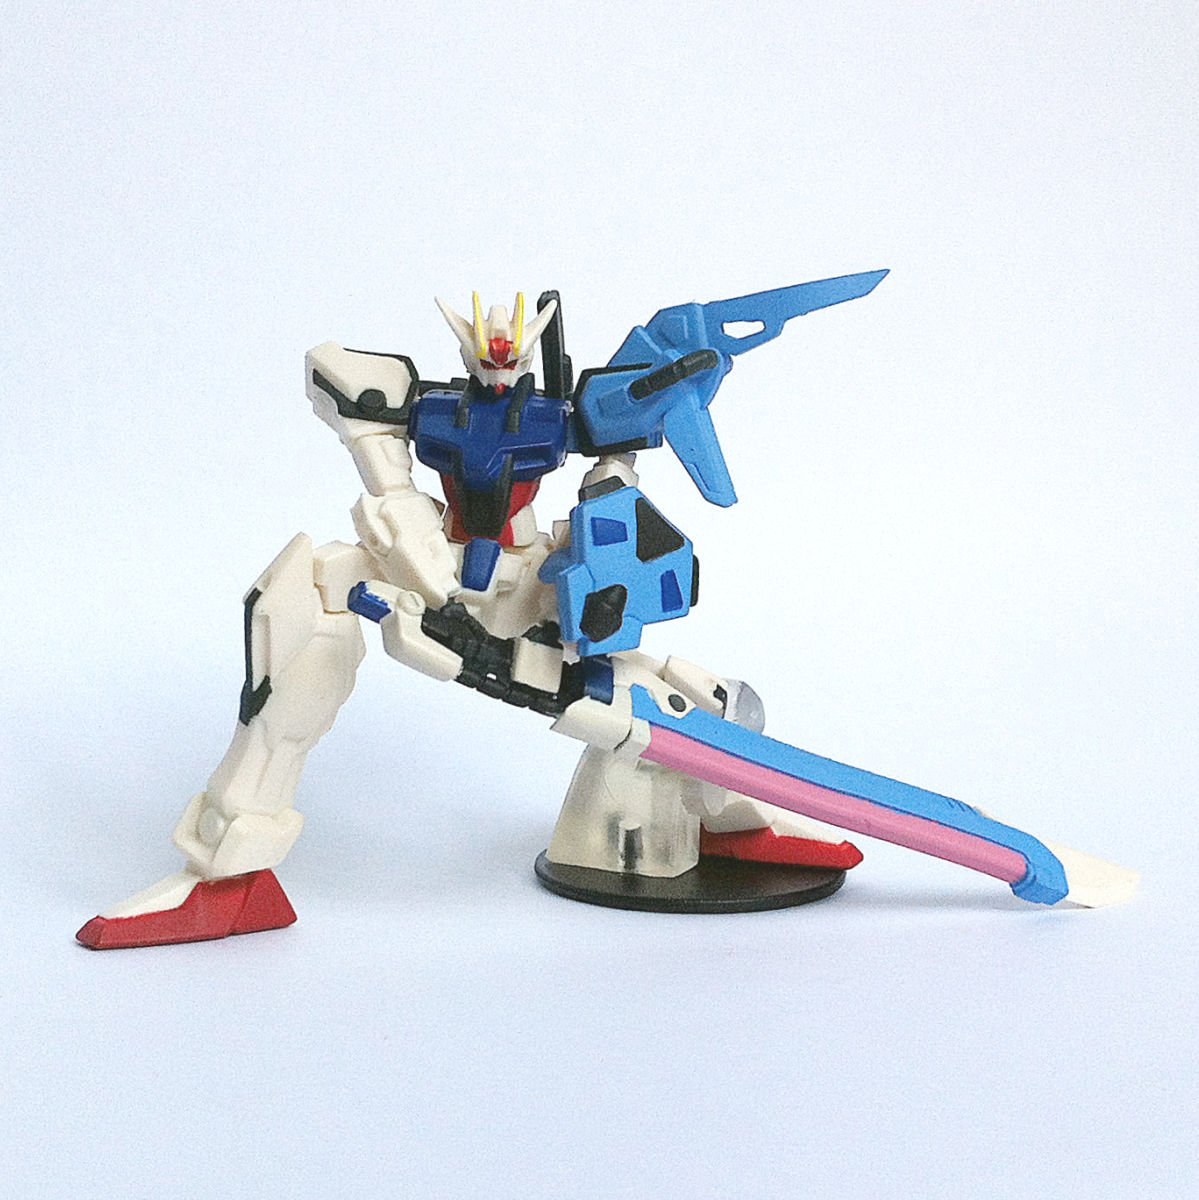 GAT-X105+AQM/E-X02 Sword Strike Gundam from HG Gundam MS Selection by Bandai